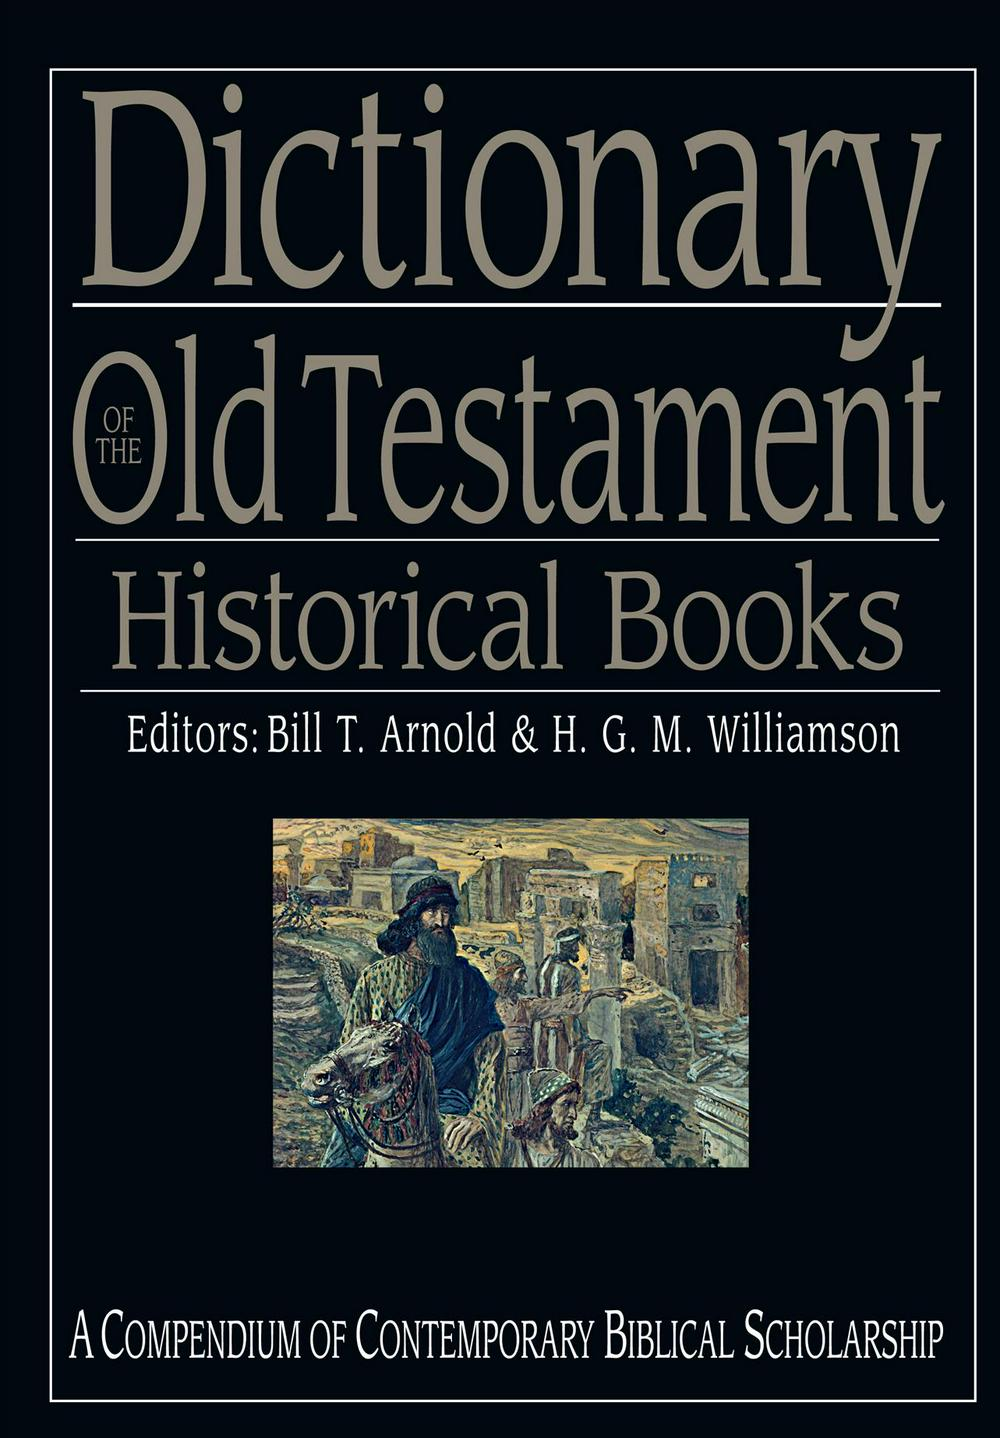 Dictionary of the Old Testament by Professor Bill T Arnold, ISBN: 9780830817825